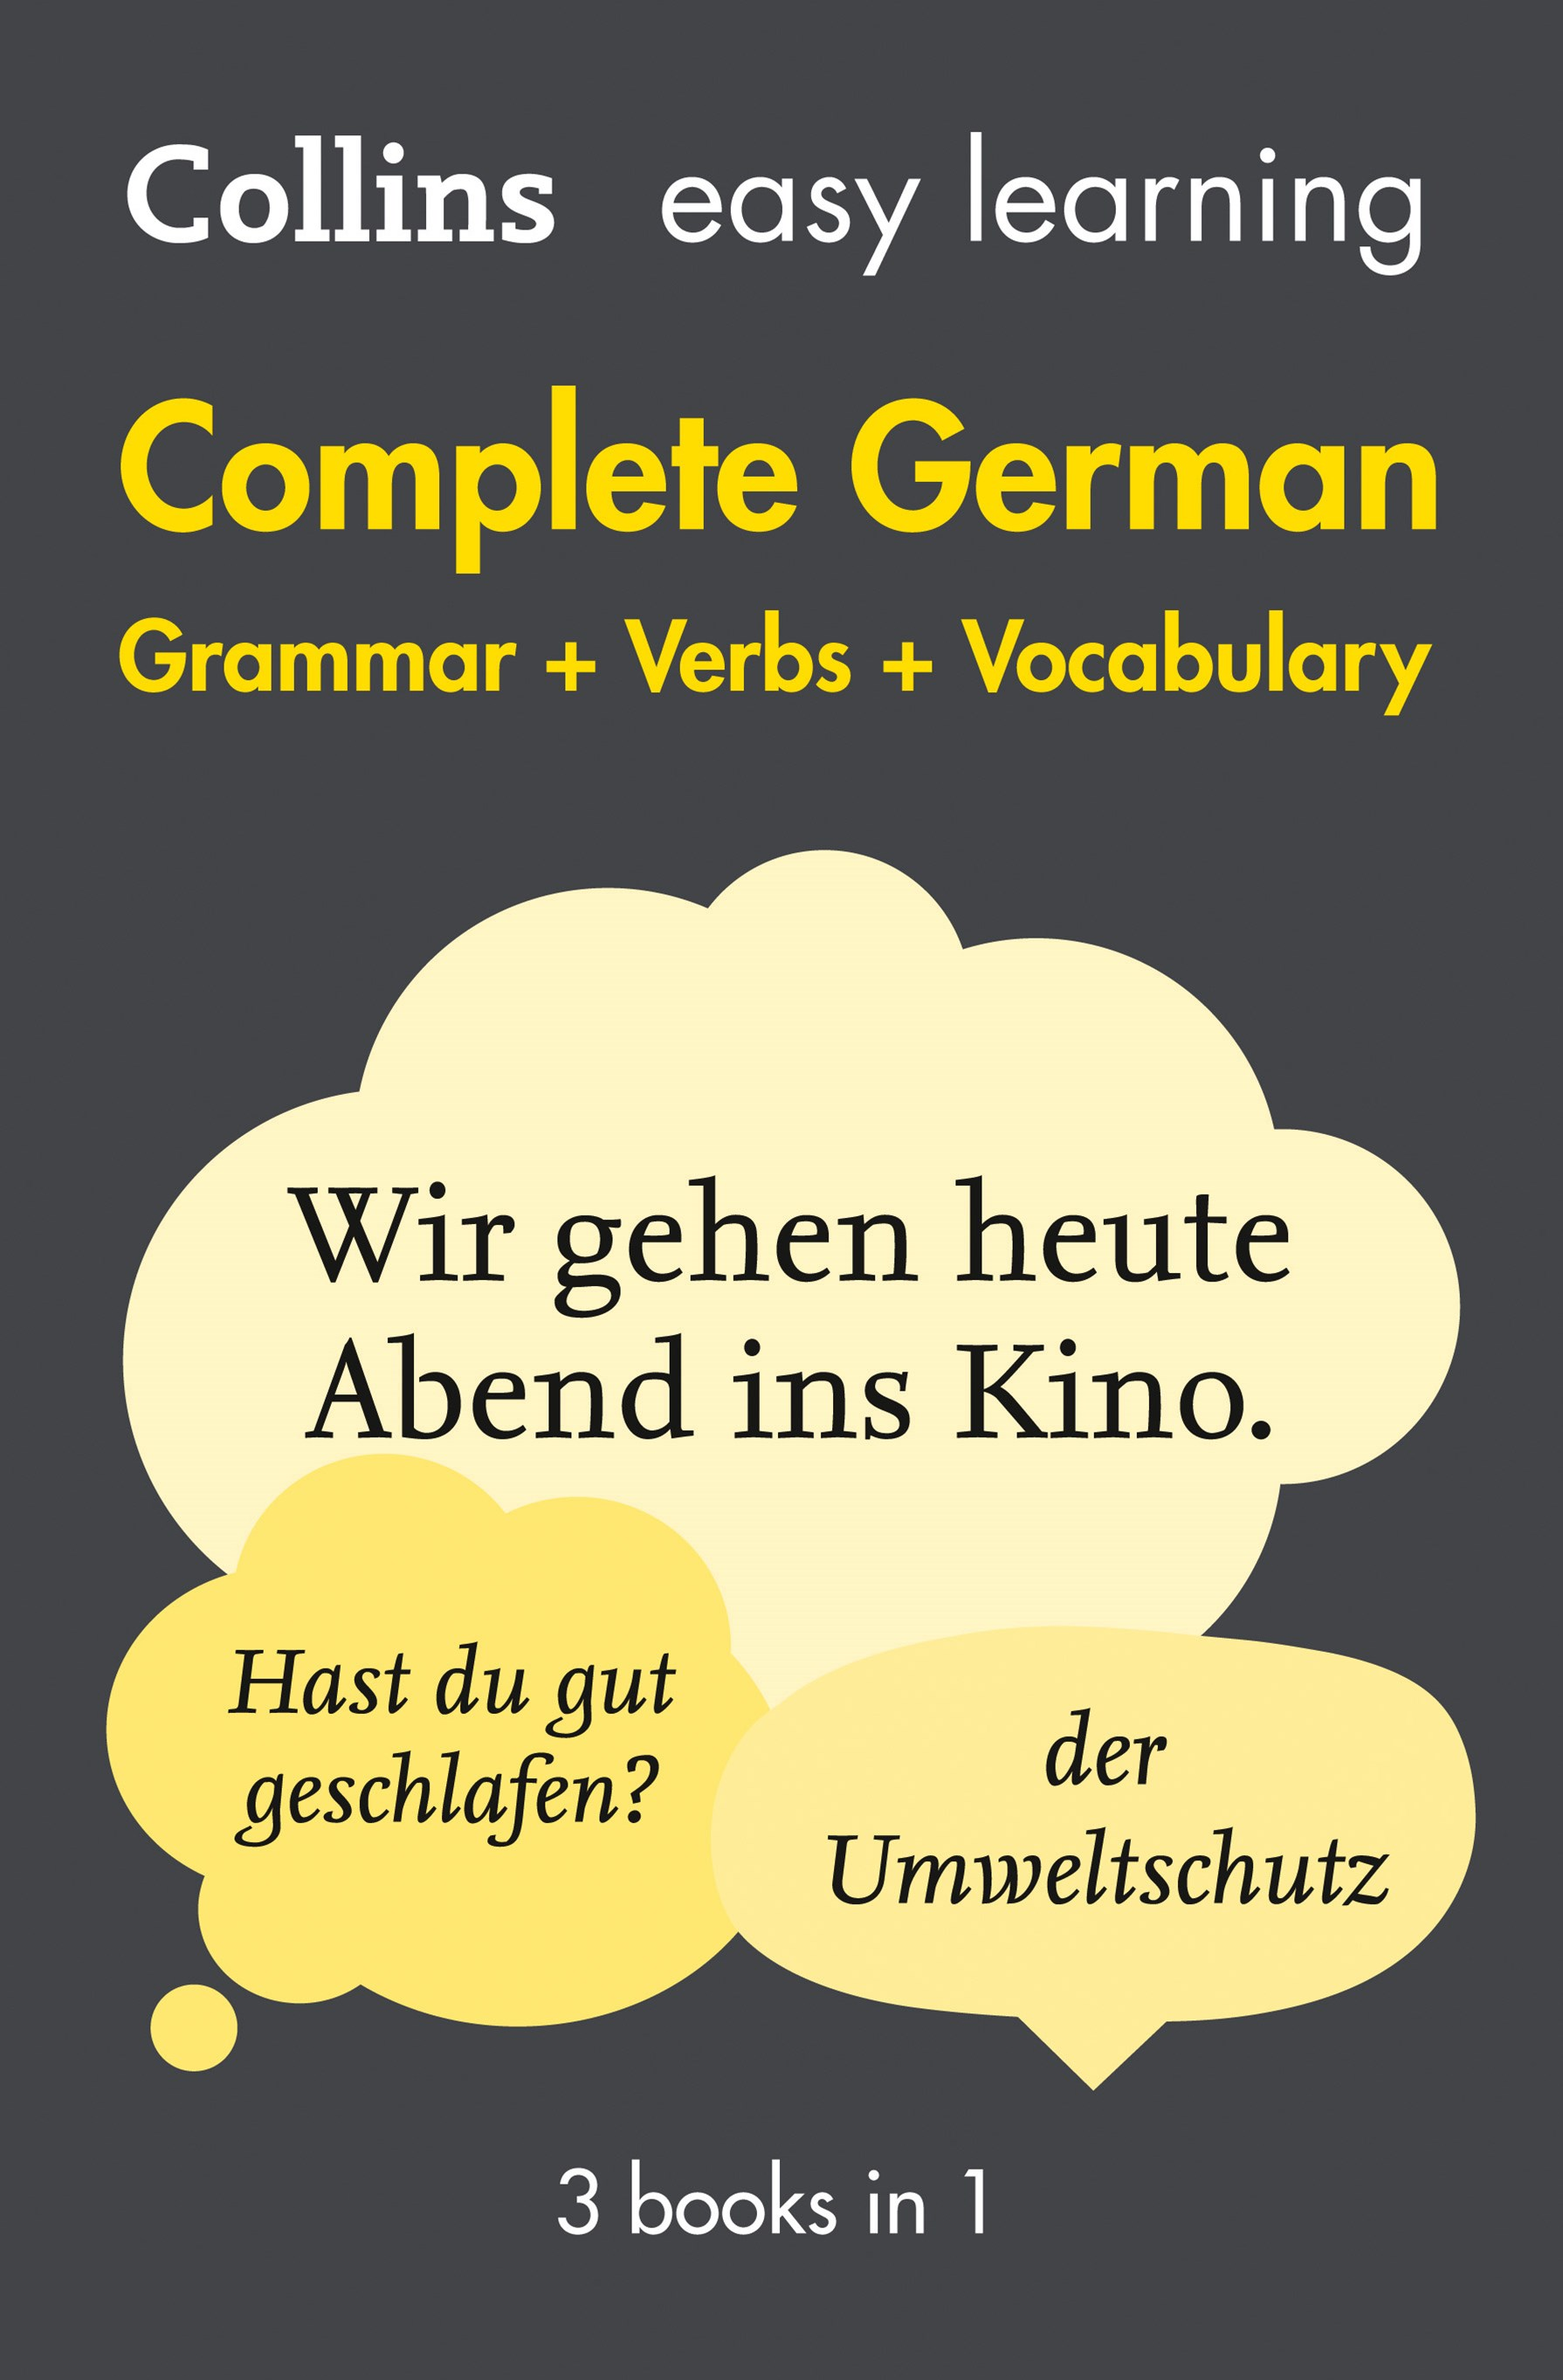 Collins Easy Learning Complete German Grammar, Verbs And Vocabulary (3 Books In 1) [2nd Edition]